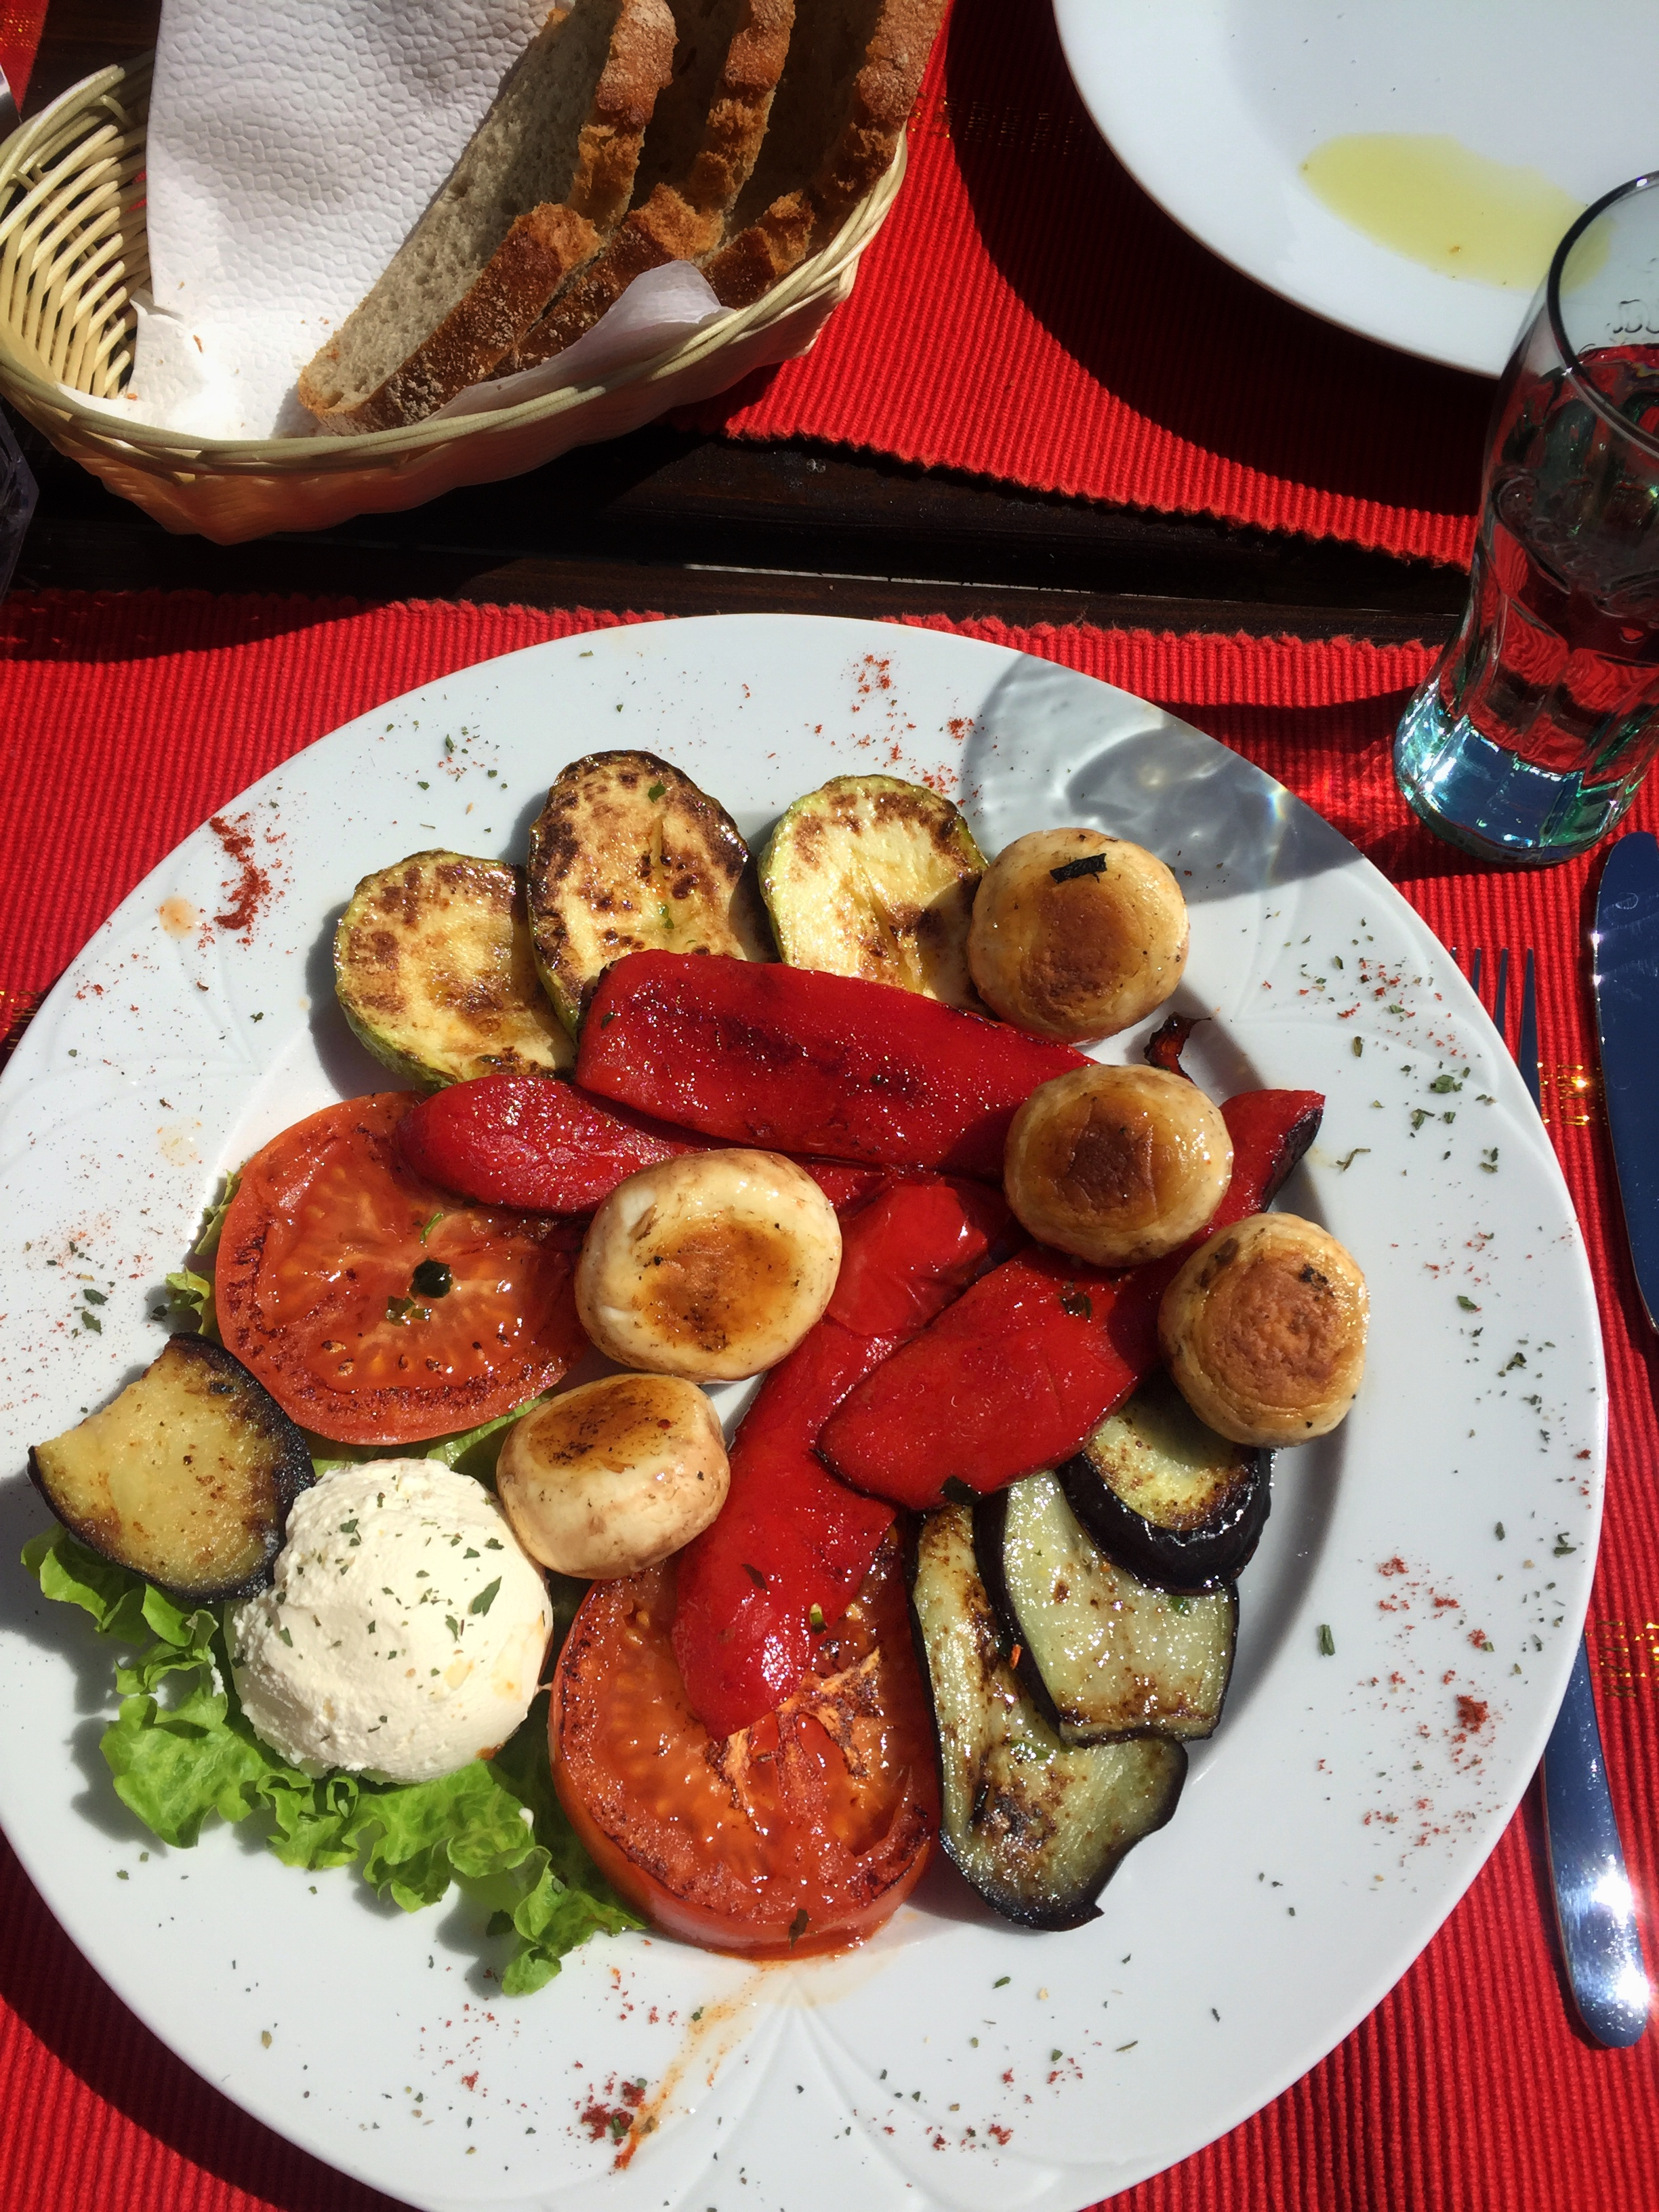 grilled vegetables & cheese at Monte Rosa (Mostar)